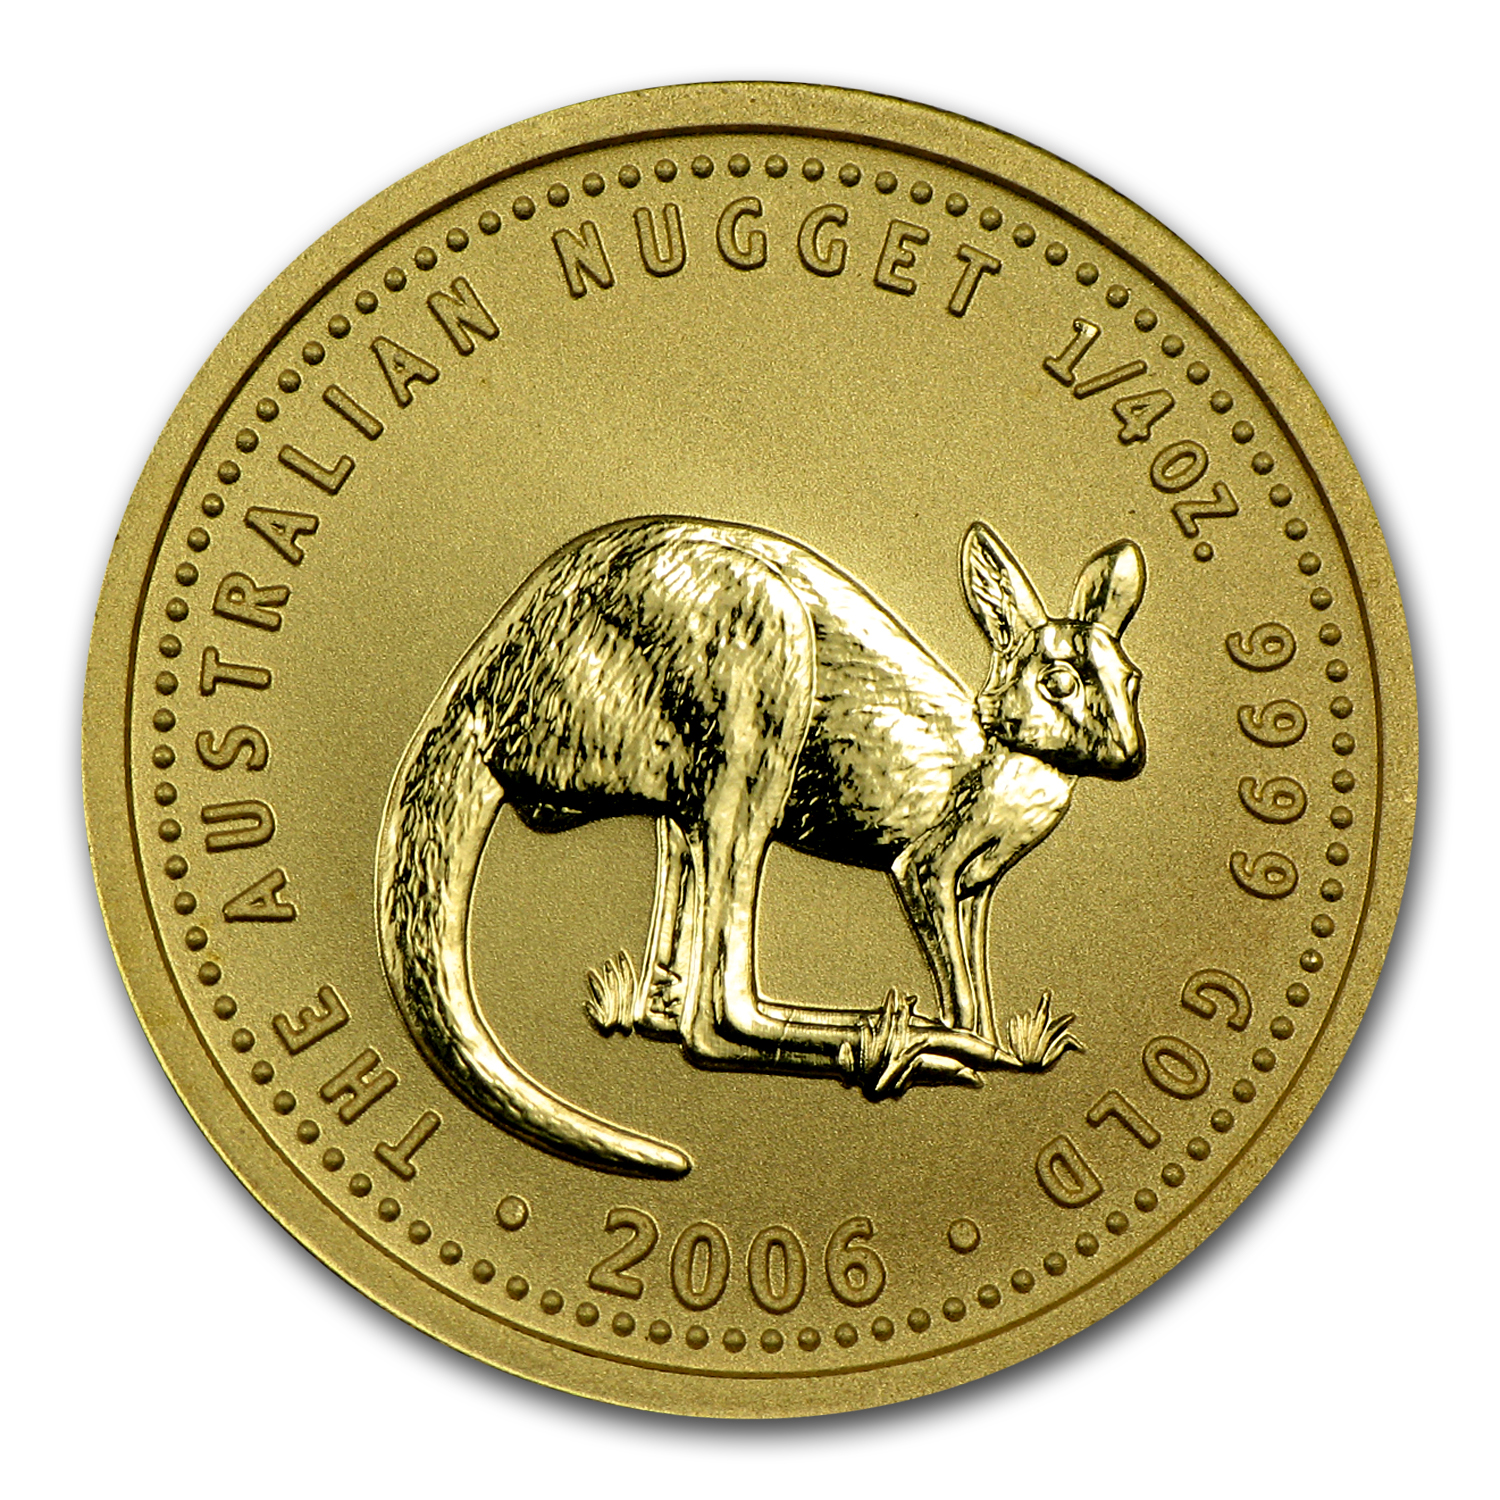 2006 1/4 oz Australian Gold Nugget